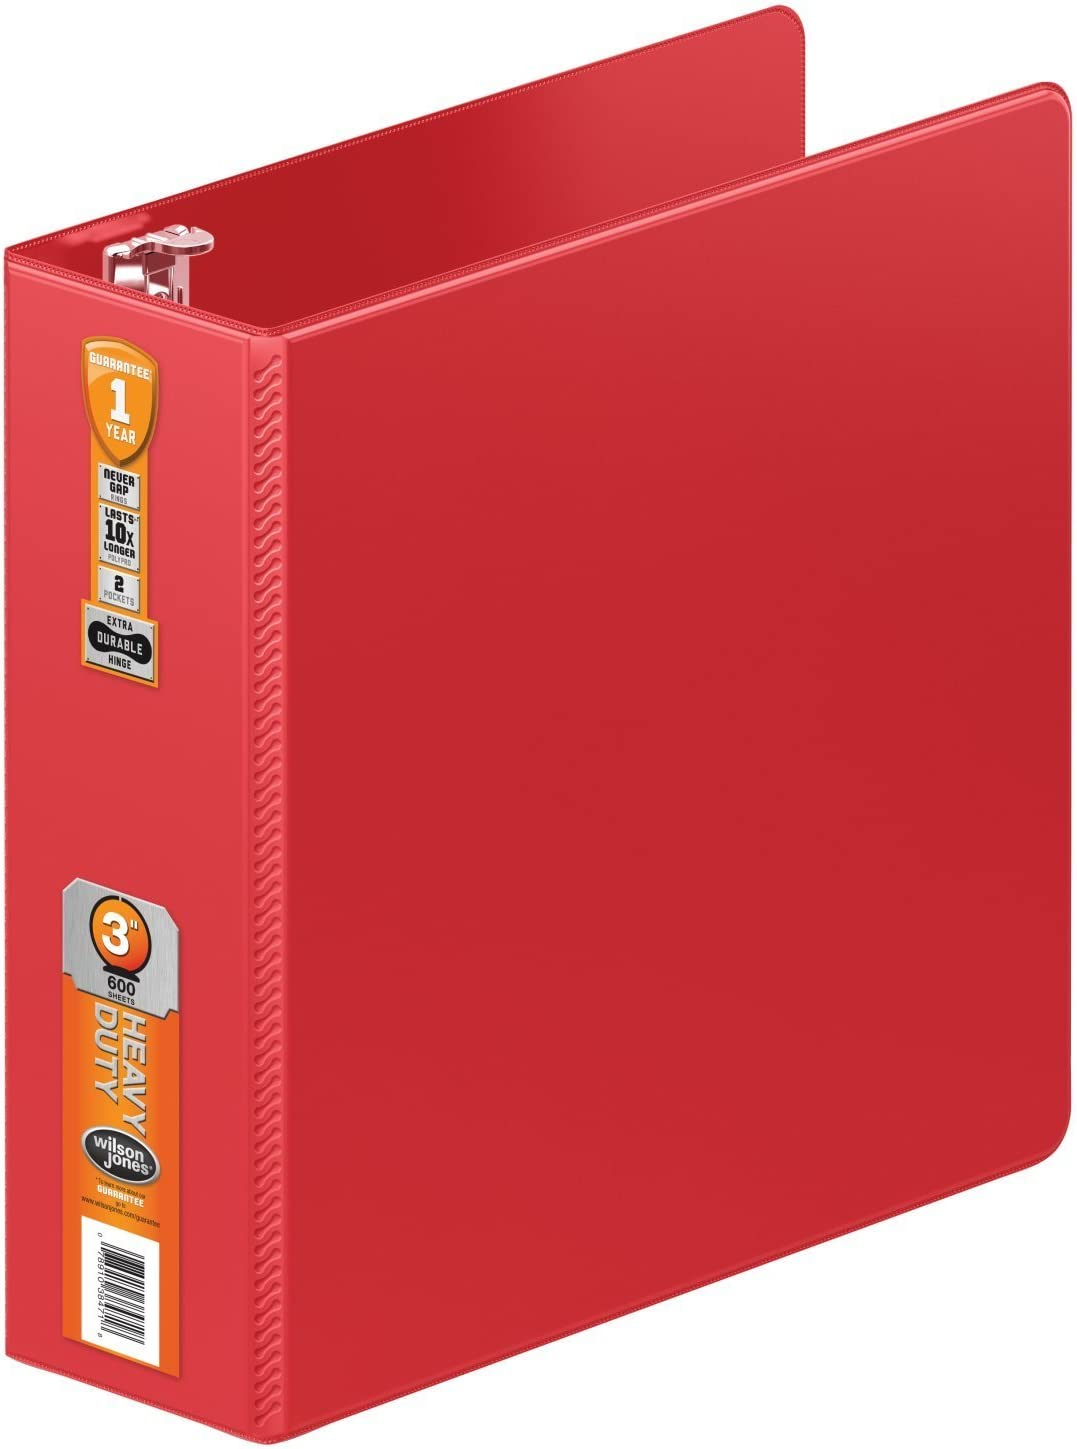 Wilson Jones Heavy Duty Round Ring Binder with Extra Durable Hinge, 3-Inch, Red (W364-49-1797) [並行輸入品]